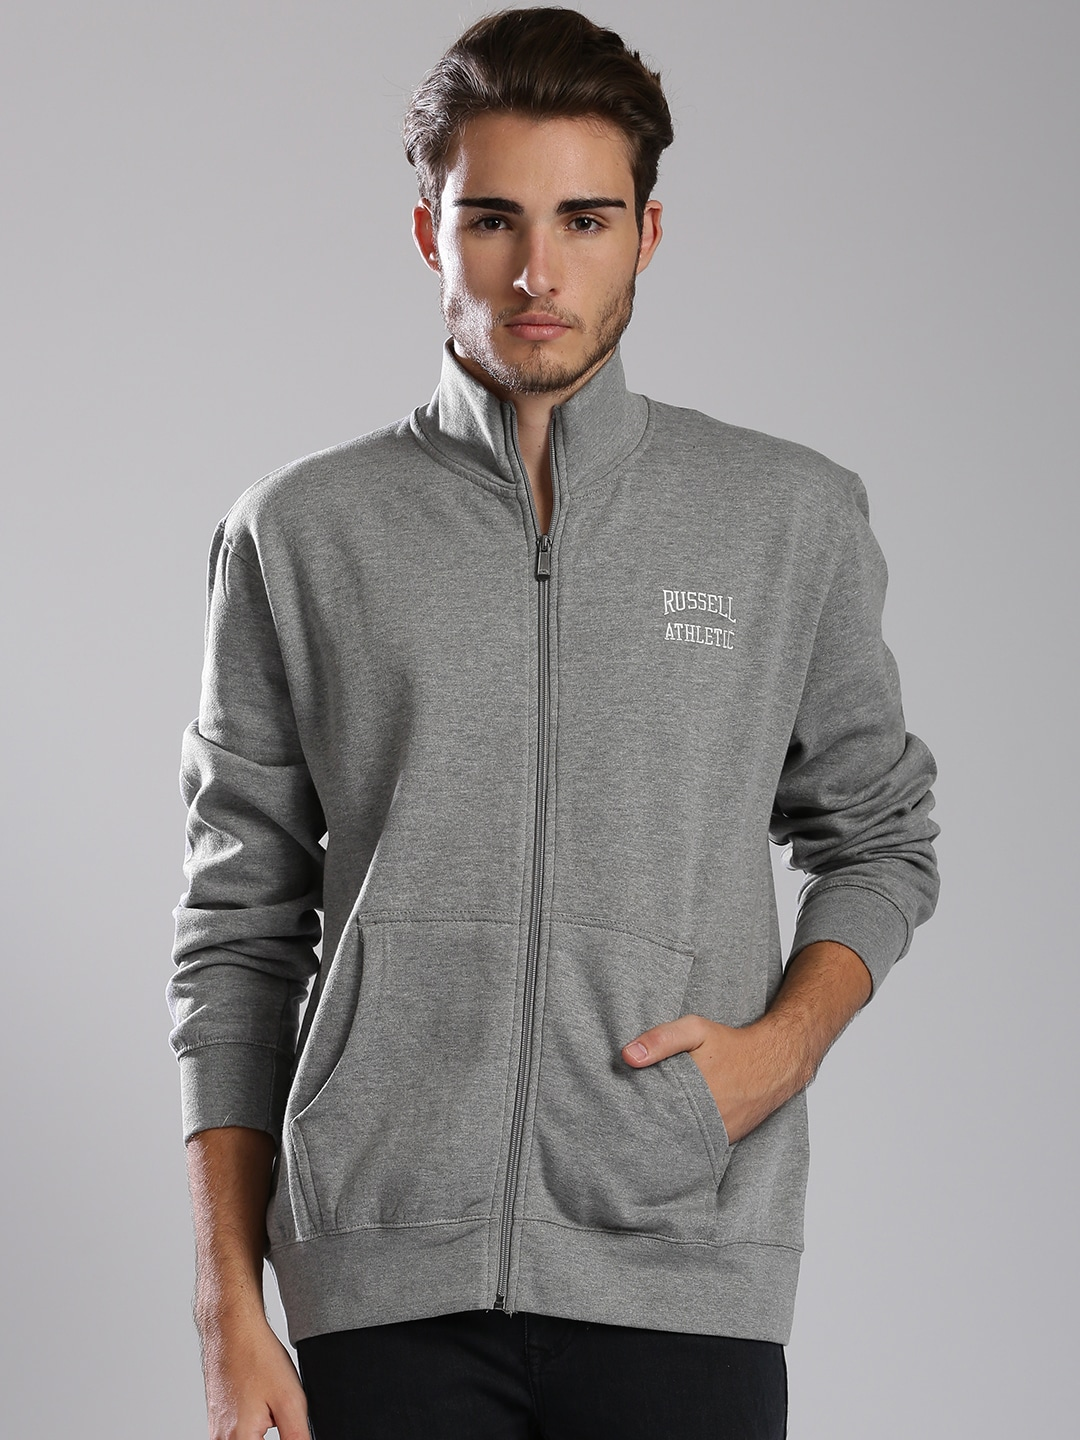 Russell Athletic Grey Melange Comfort Fit Sweatshirt image